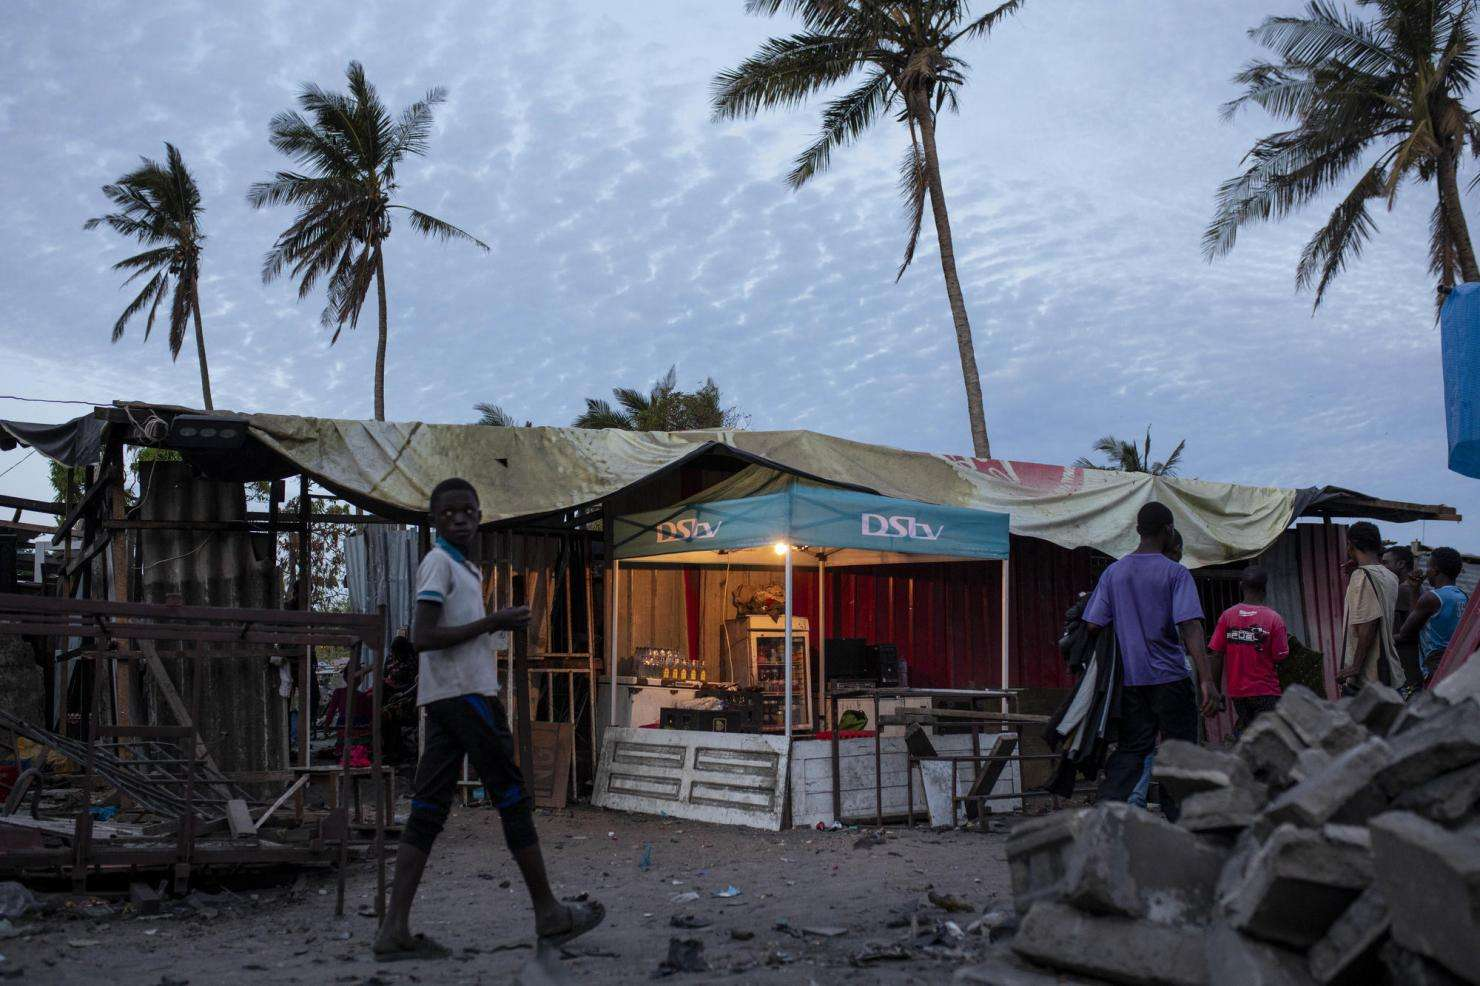 MSF restarts HIV-related activities in Beira after the Cyclone Idai